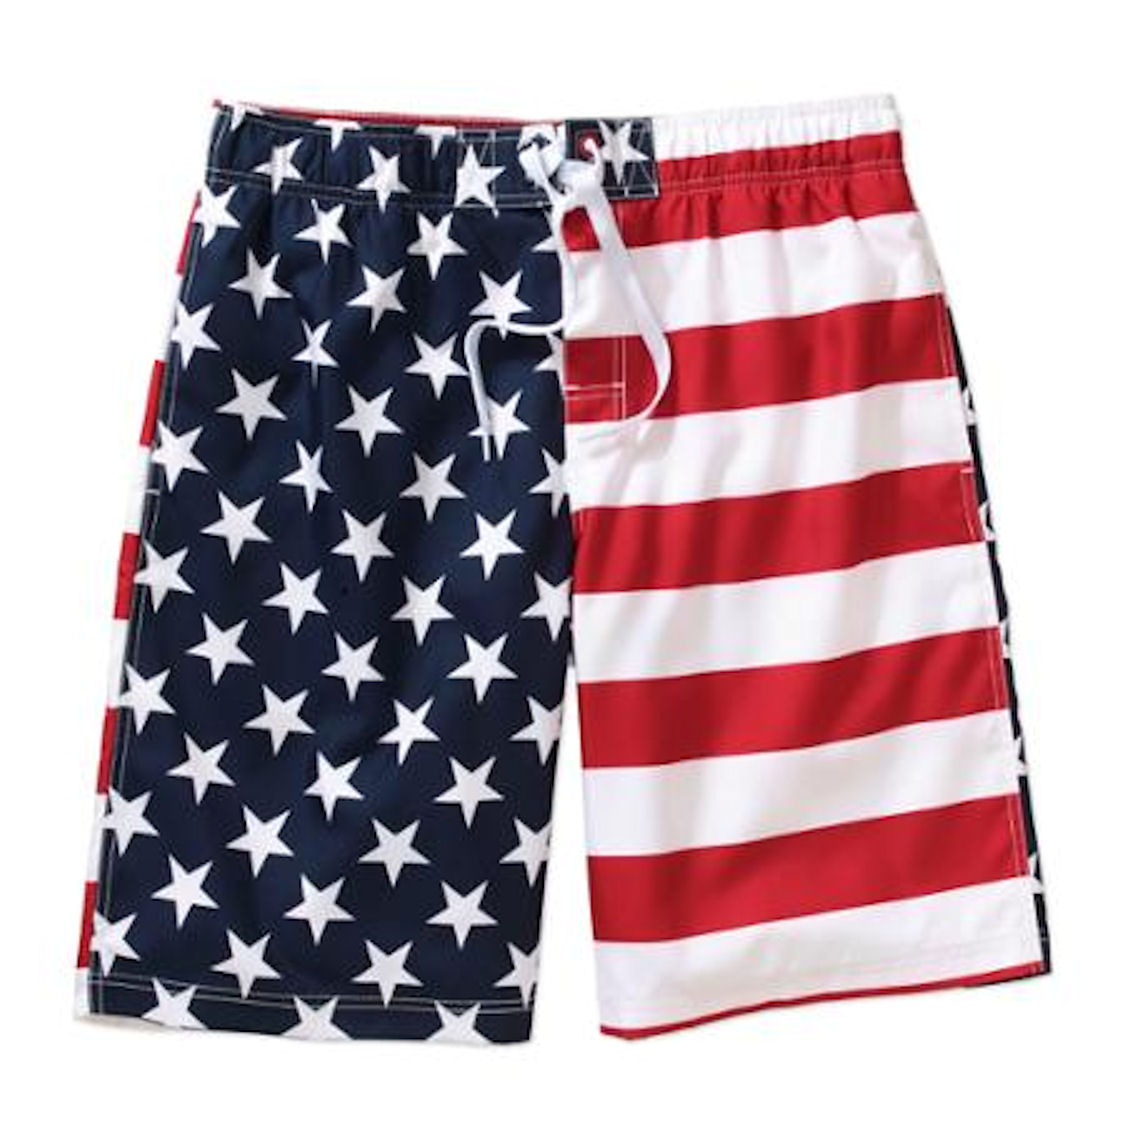 Faded Glory Men's Patriotic USA American Flag Swim Trunks (3X)